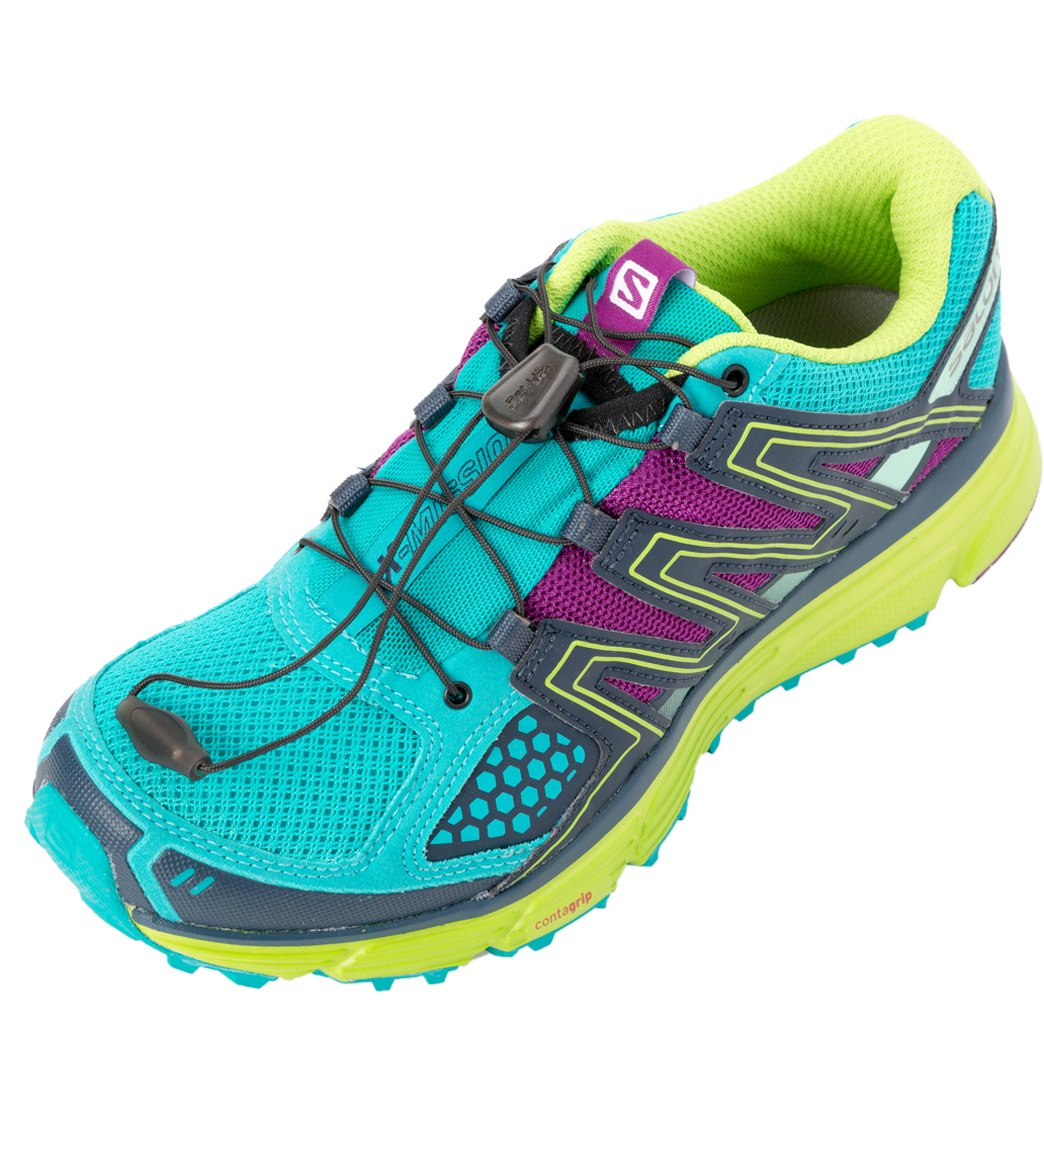 b2962f967fa1 Salomon Women s X-Mission 3 Running Shoes at SwimOutlet.com - Free Shipping